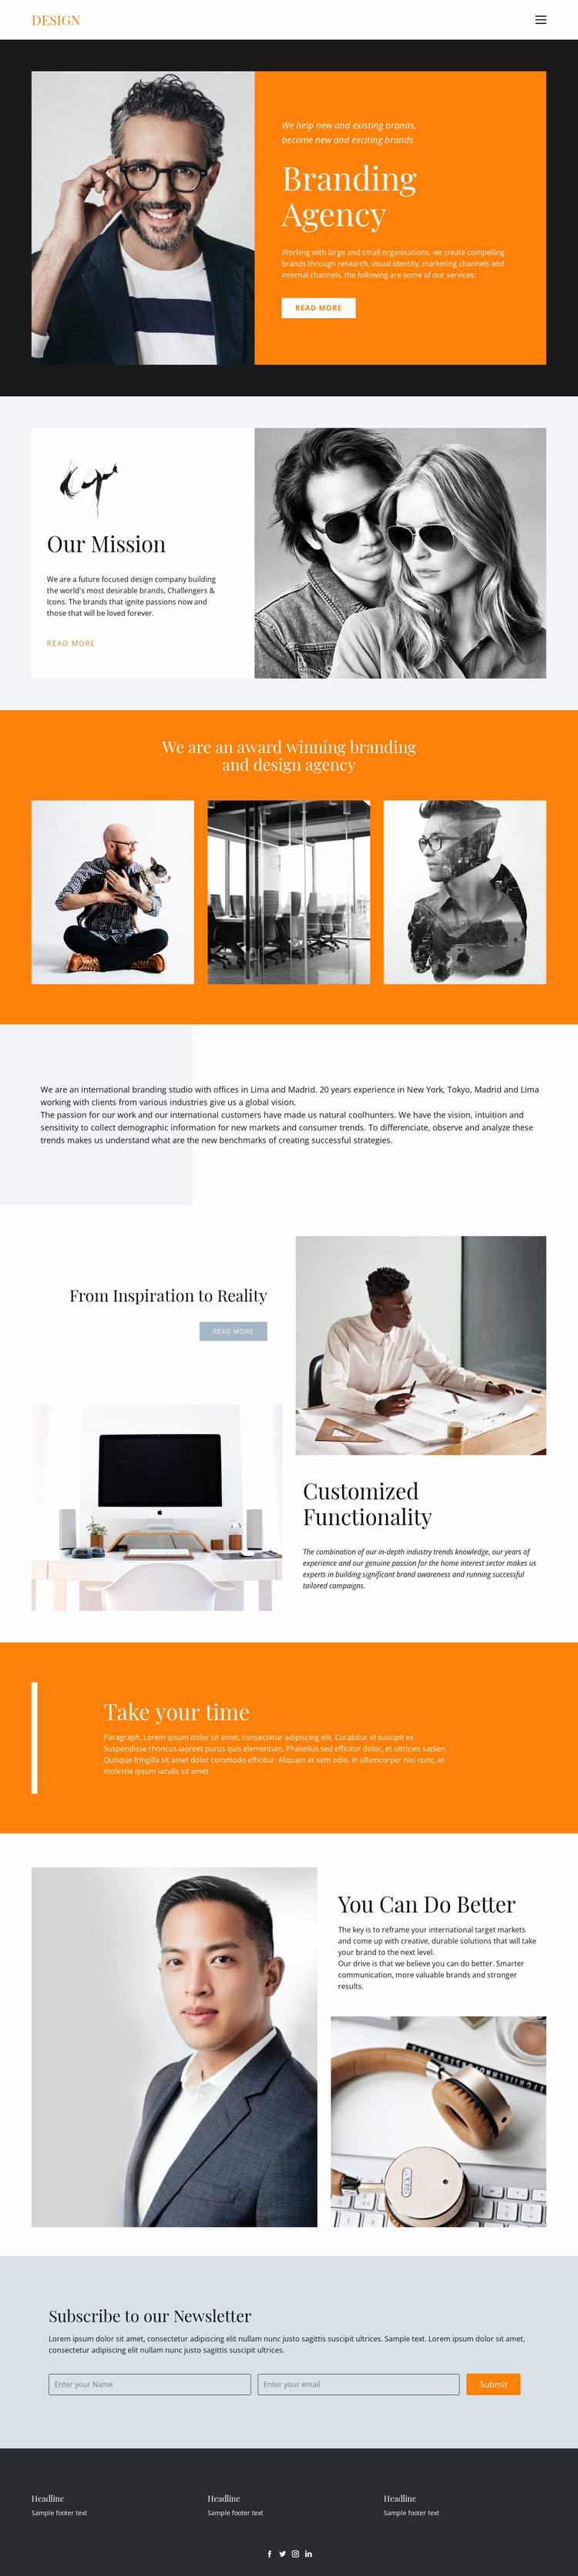 Desired results in business Website Mockup